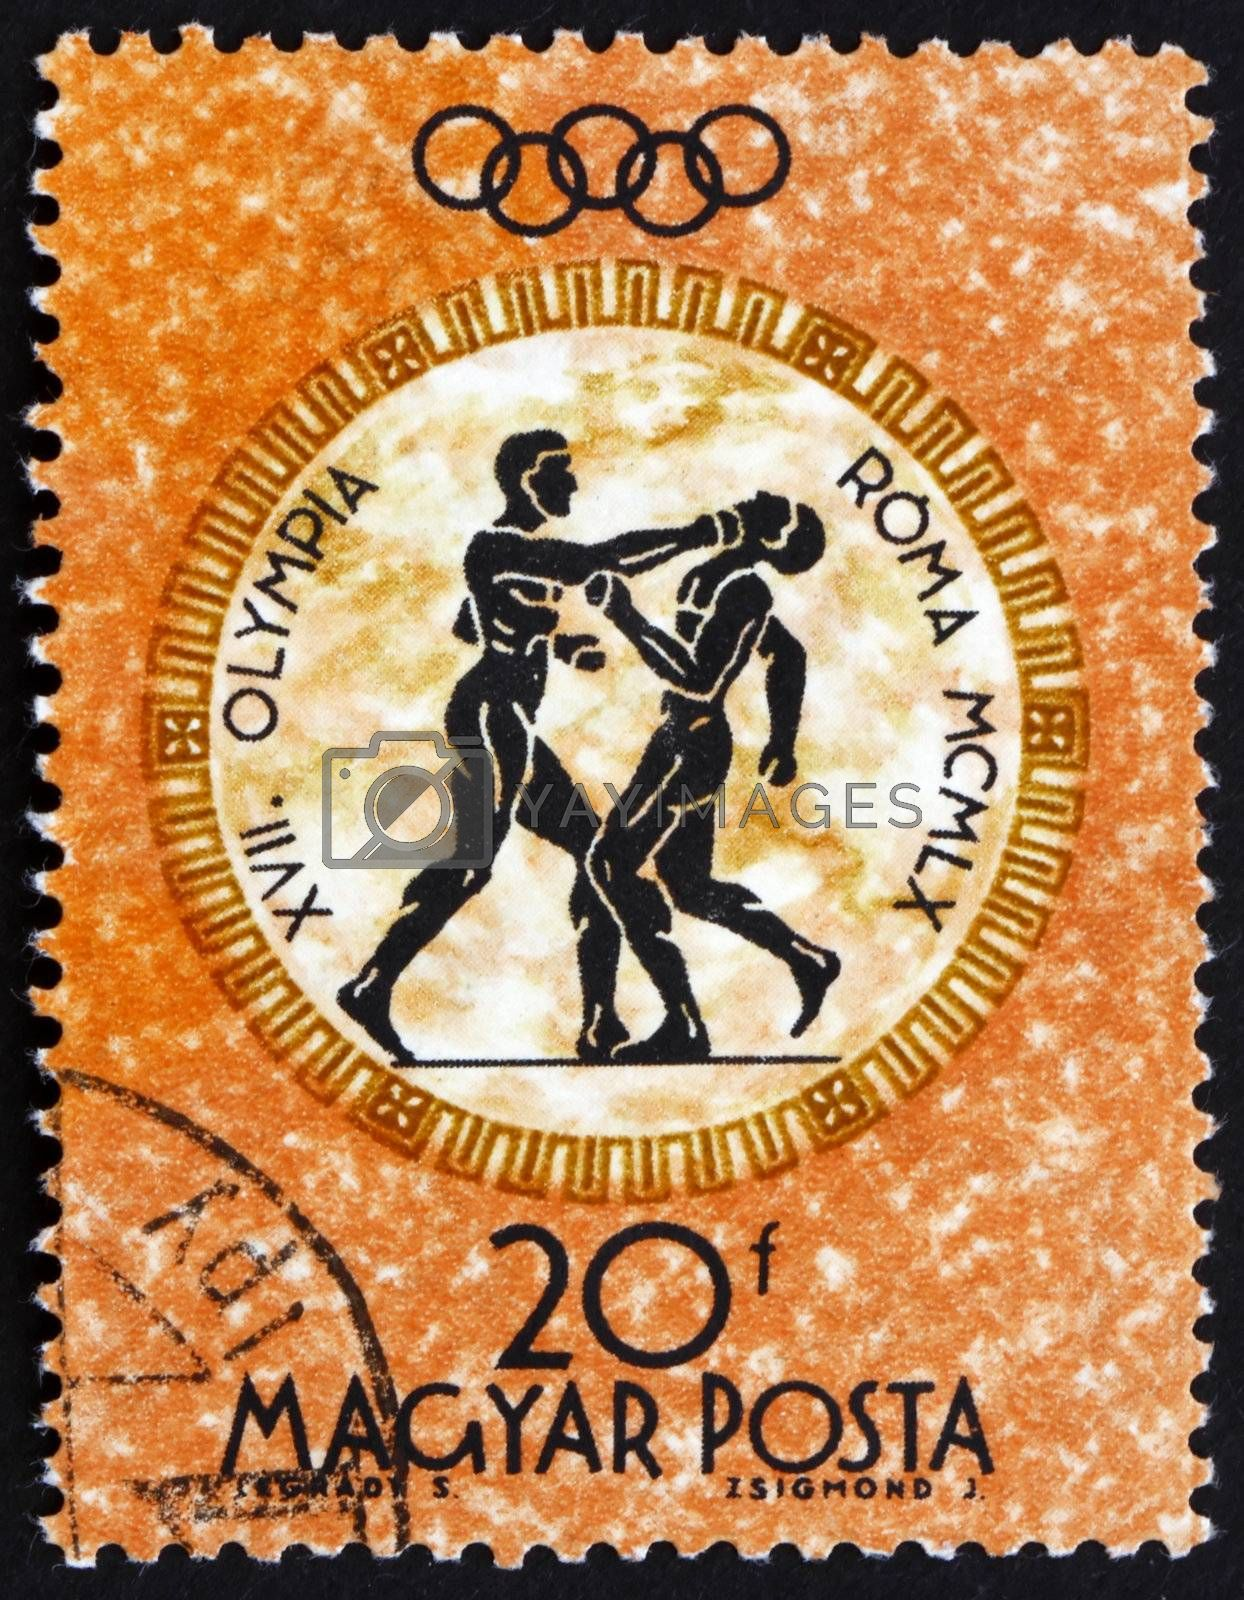 HUNGARY - CIRCA 1960: a stamp printed in the Hungary shows Boxers, Summer Olympic sports, Rome 60, circa 1960